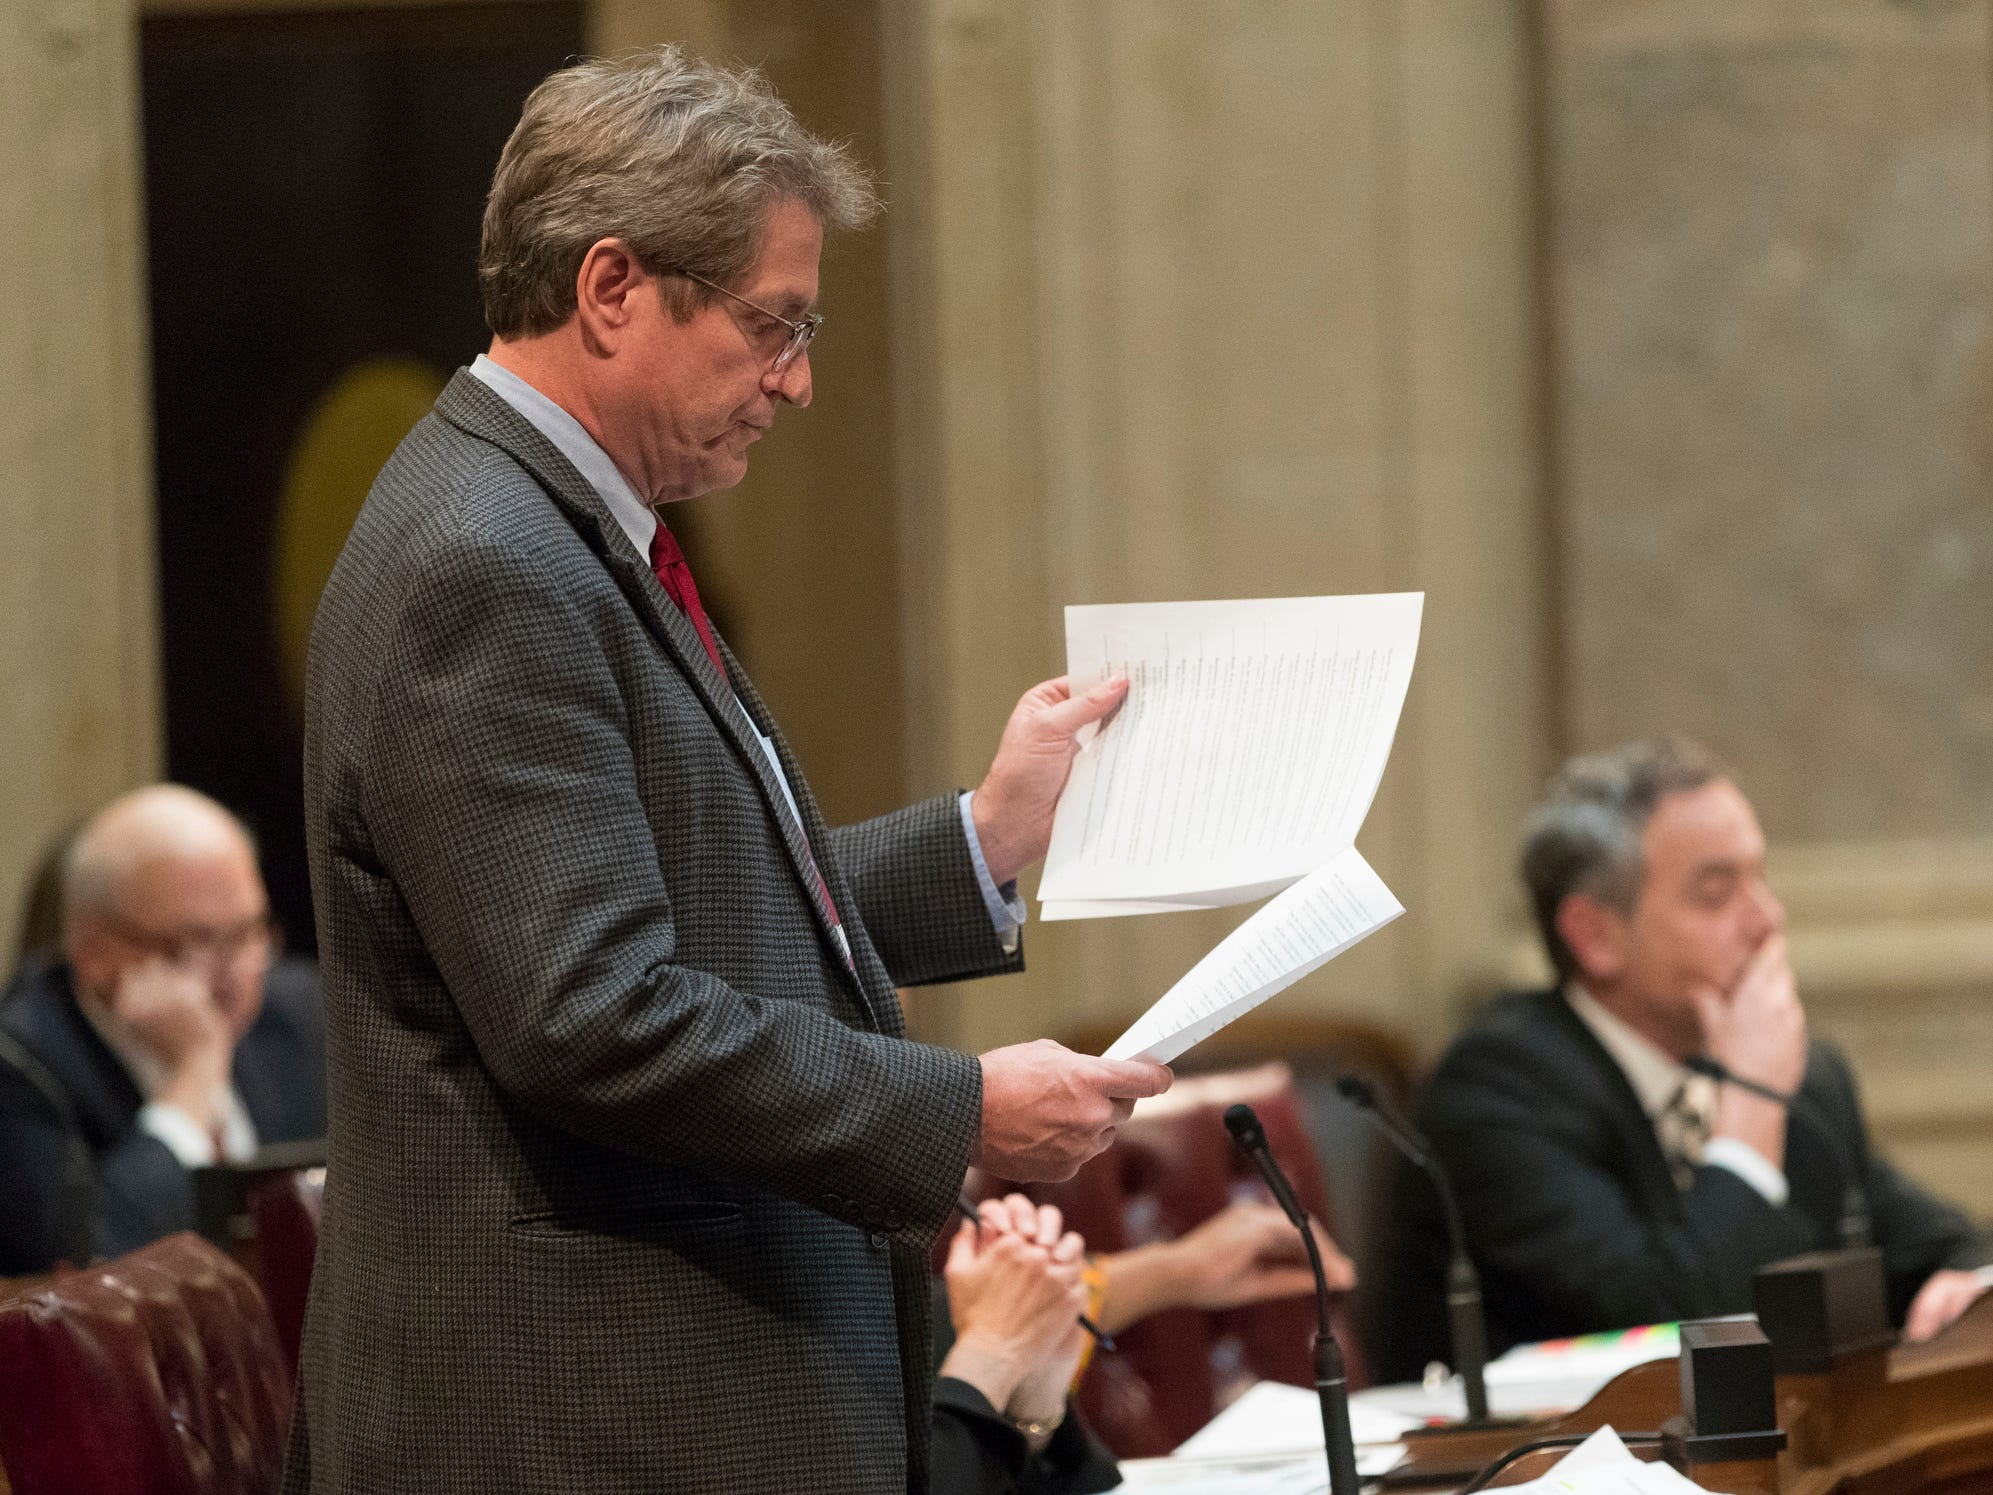 State Sen. Tim Carpenter, D-Milwaukee, questions a list of about 50 appointment referrals submitted to the state Senate at the Capitol in Madison, Wis.